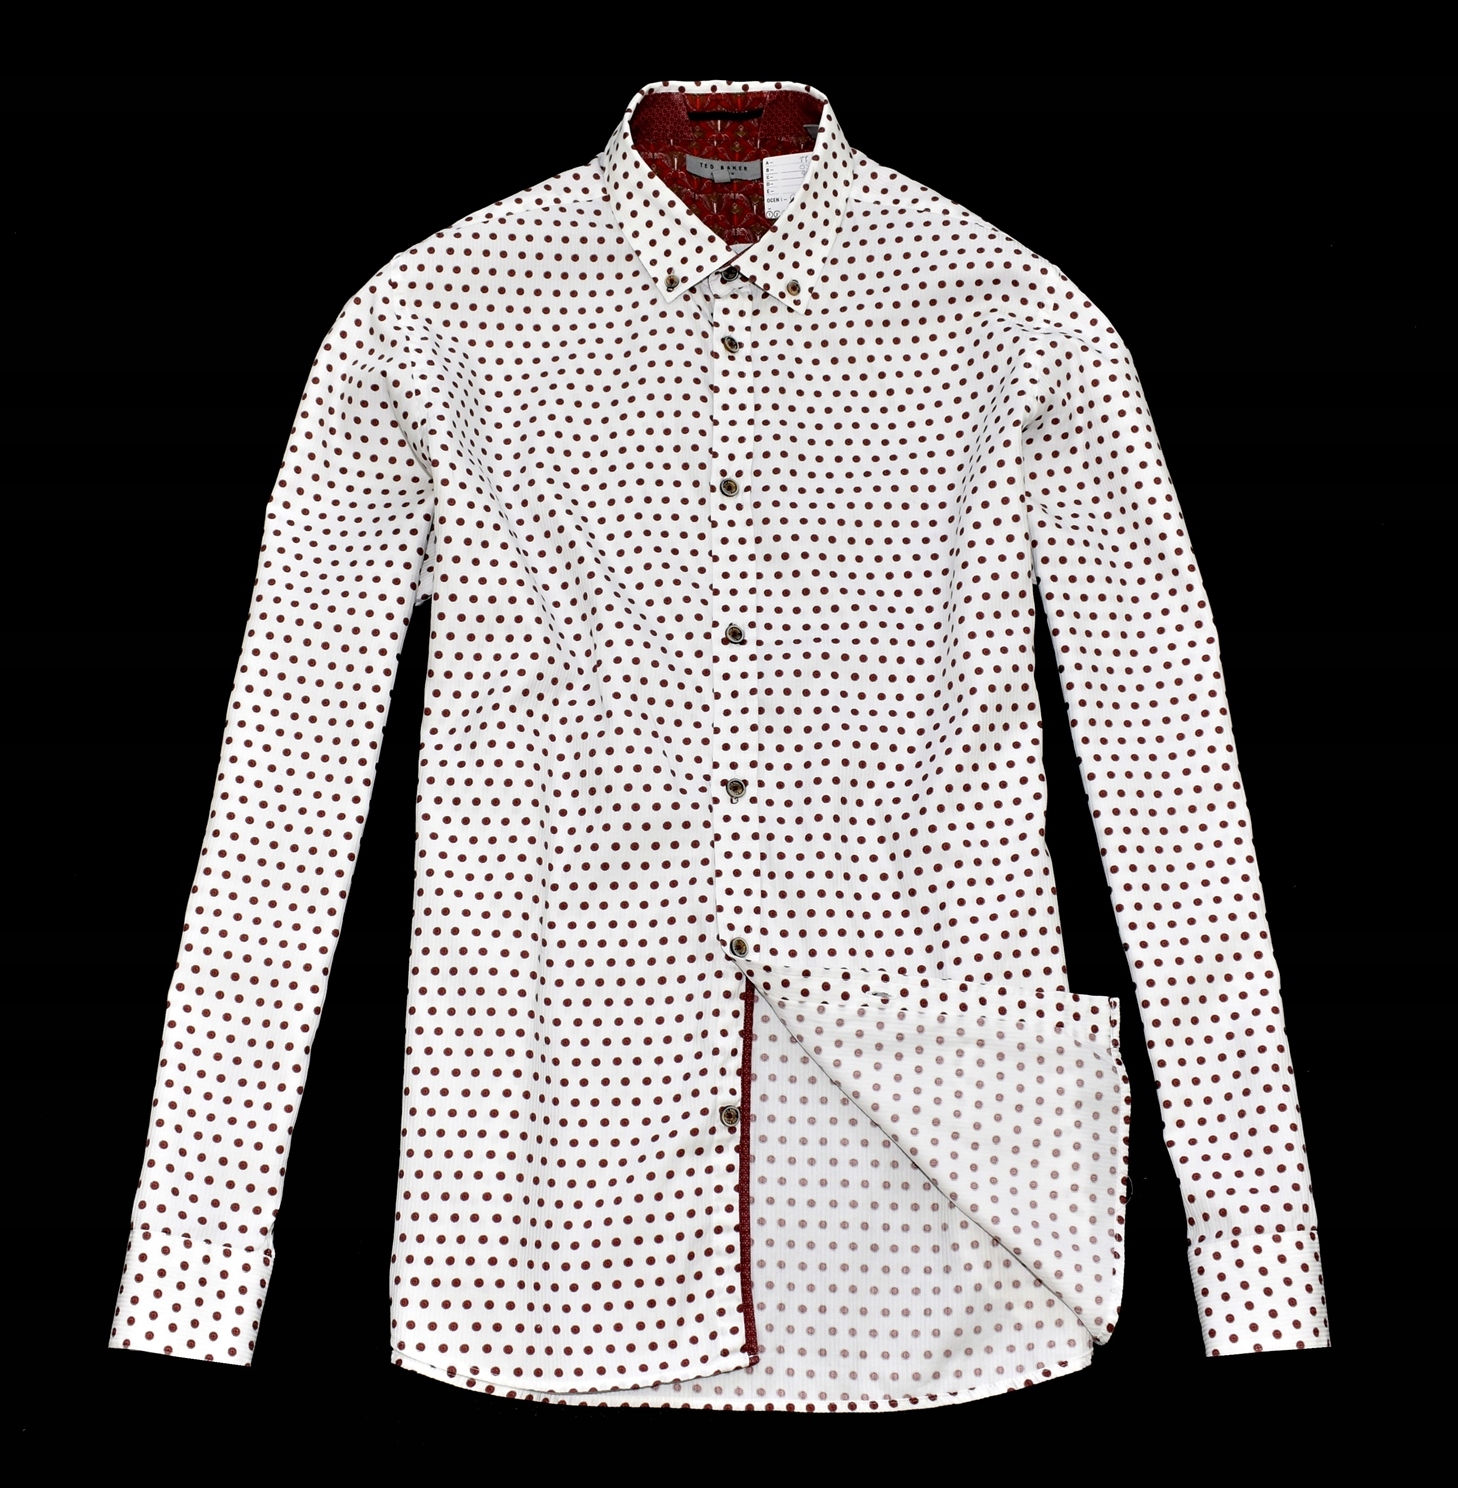 MM 311 TED BAKER _EXCLUSIVE PREMIUM SHIRT_M